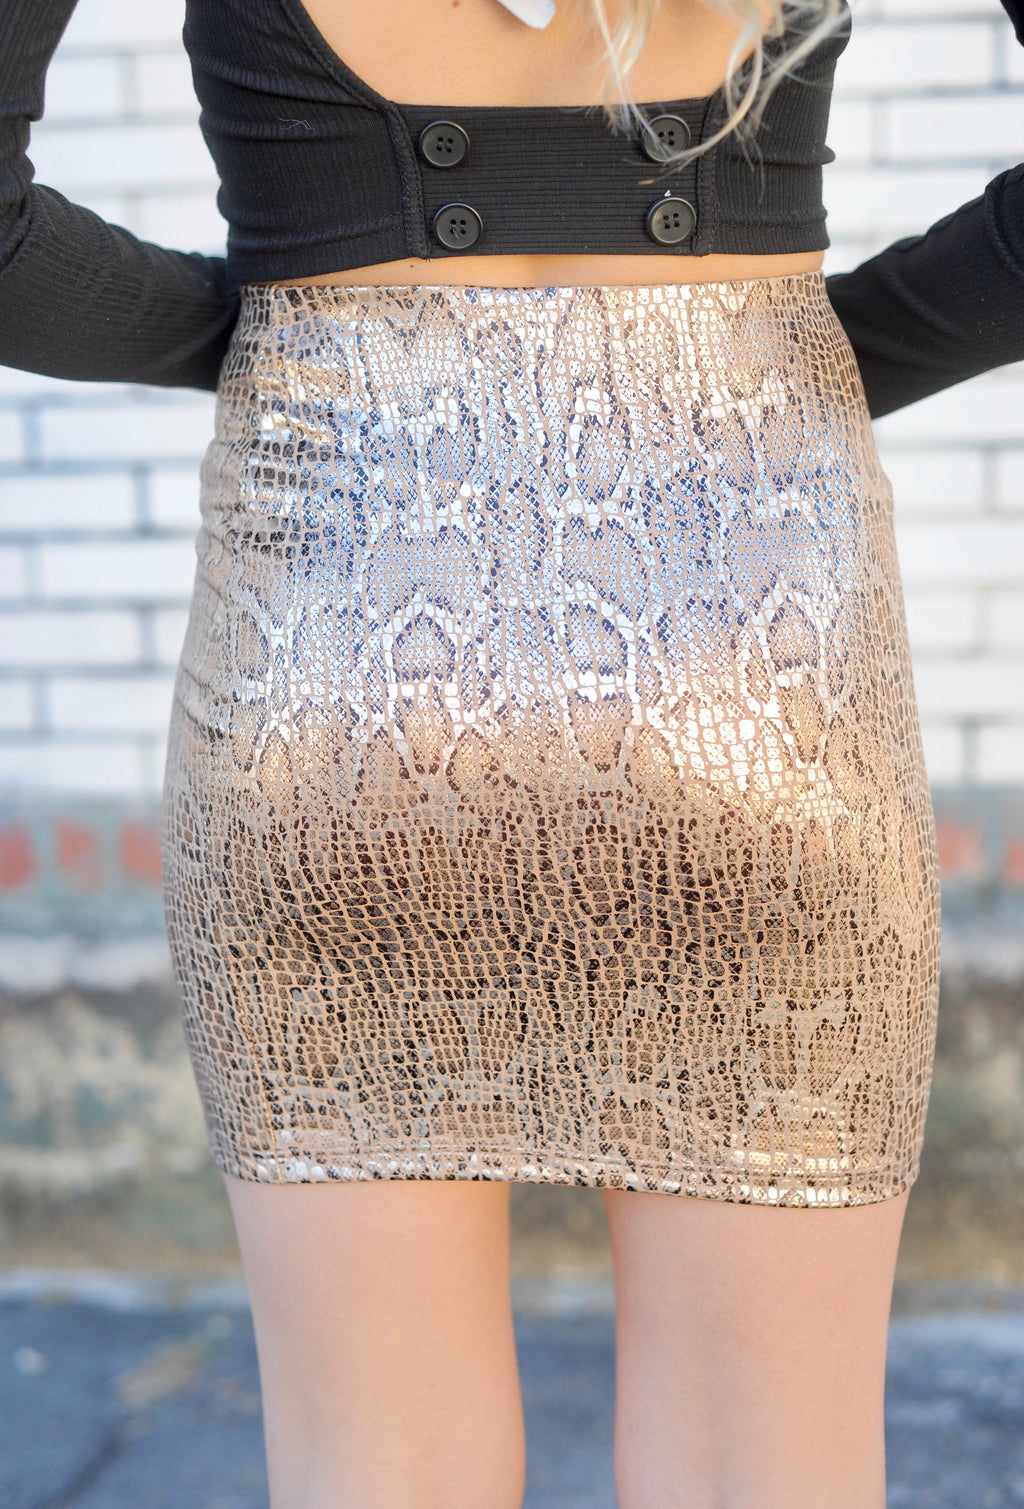 Snakeskin Metallic Skirt